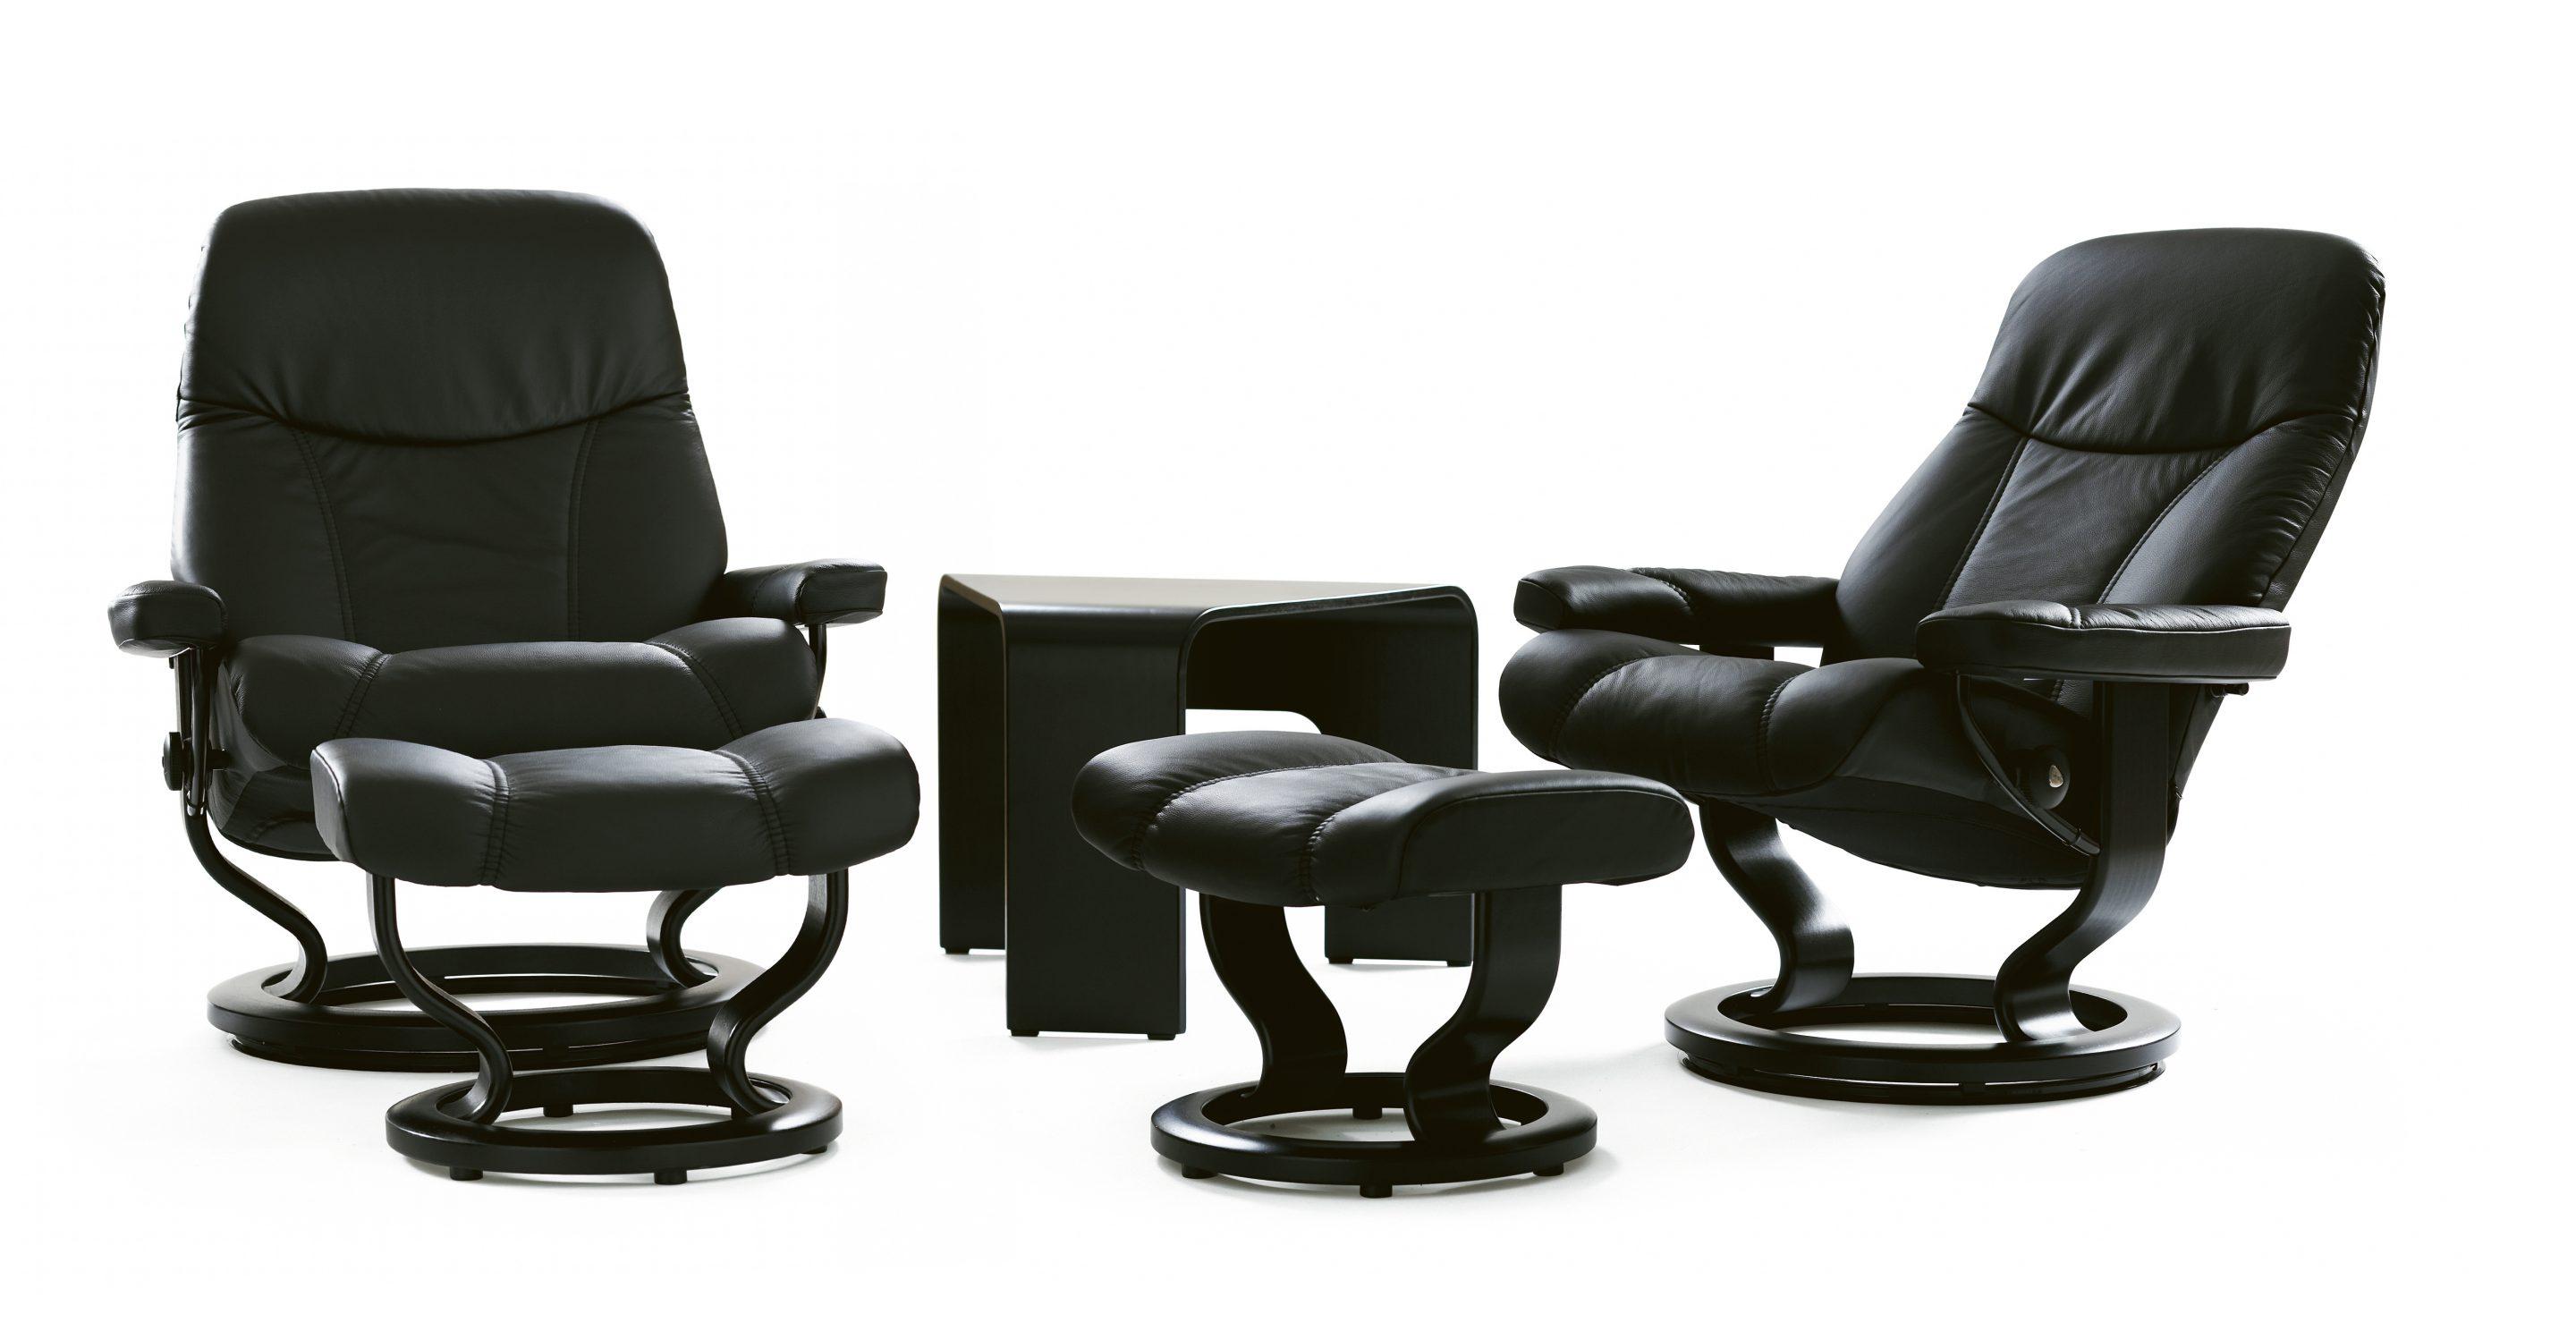 Stressless consul small chair and stool in batick leather - Consul Ambassador 2480824932 J